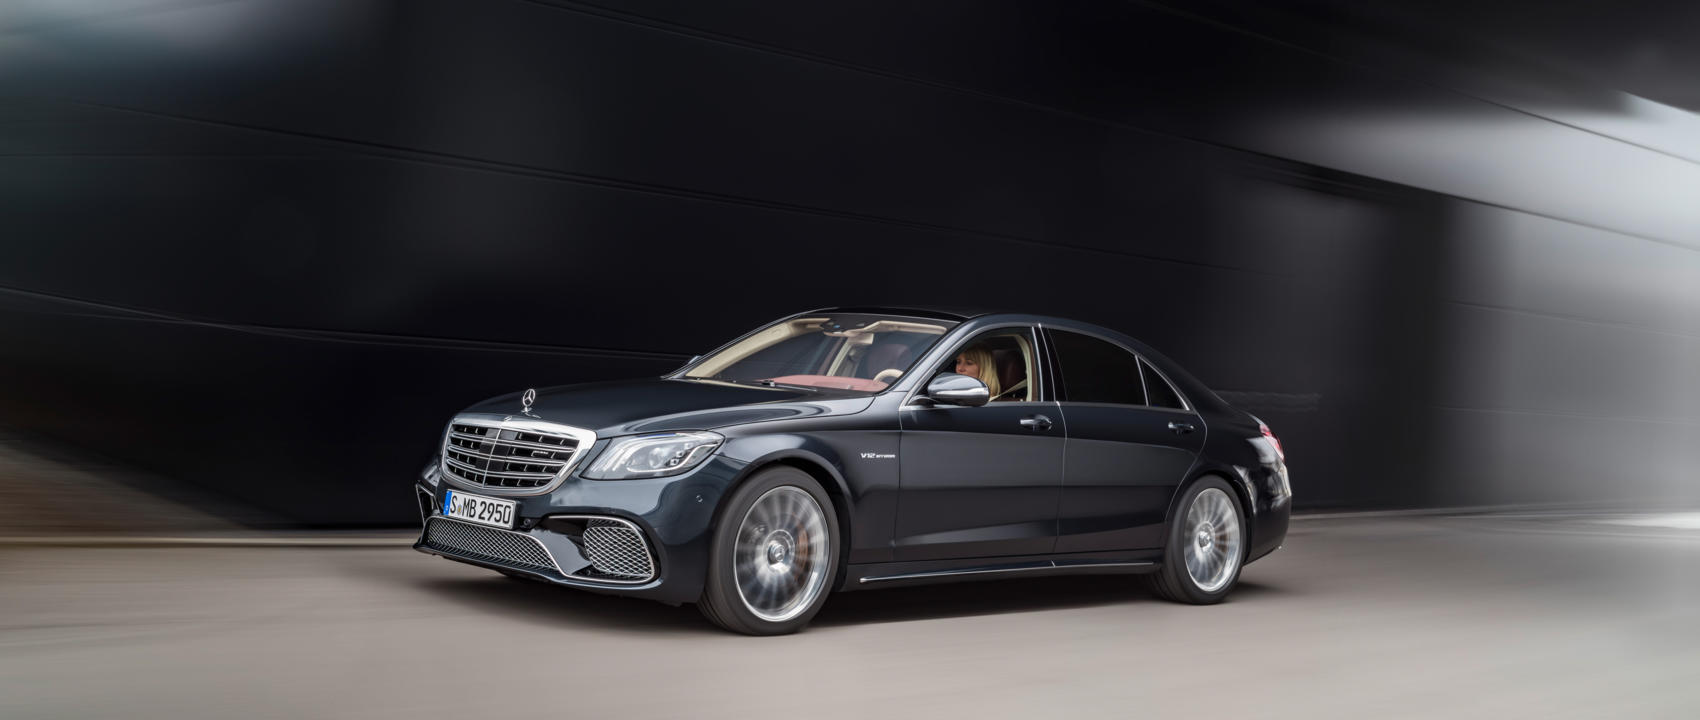 Mercedes-AMG S 65 4MATIC